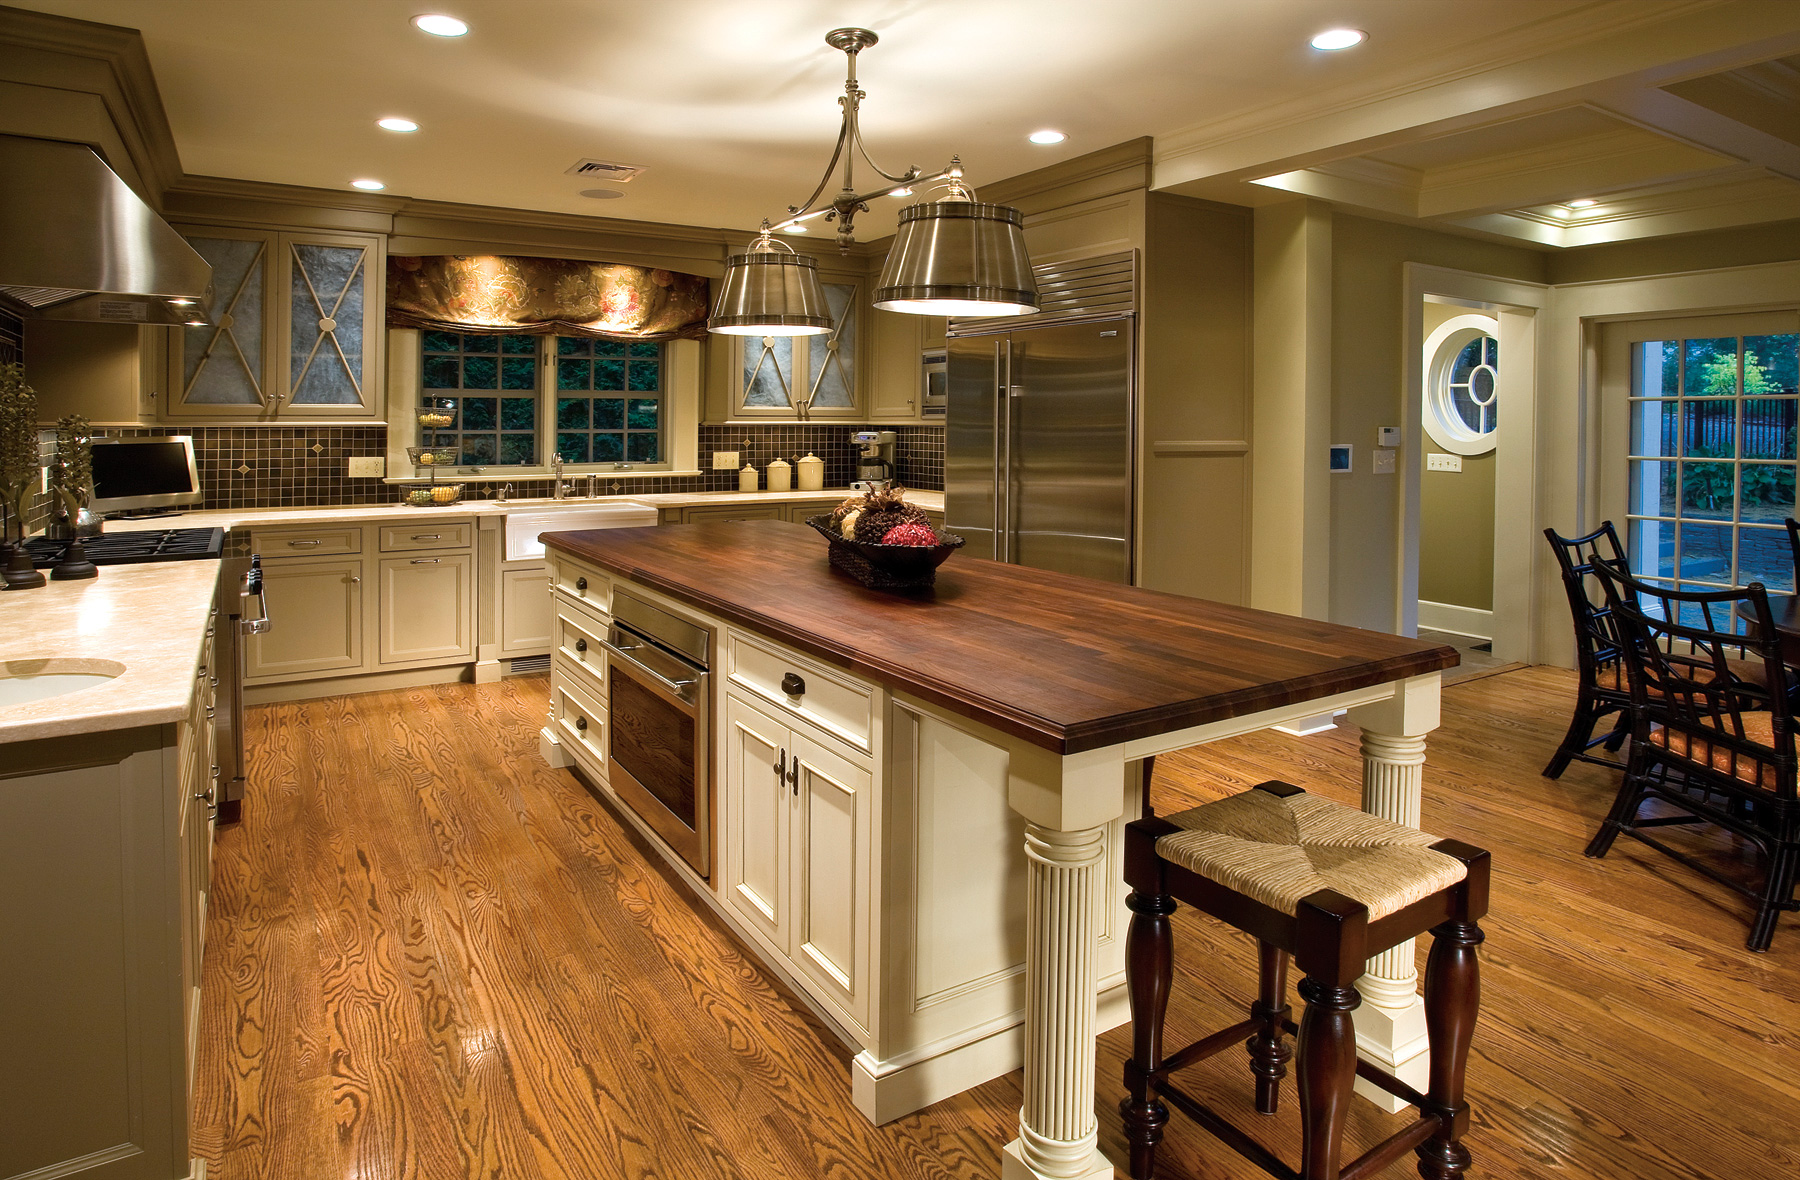 Heirloom Wood Countertops Traditional Kitchen With Charm And Polish Plain And Fancy